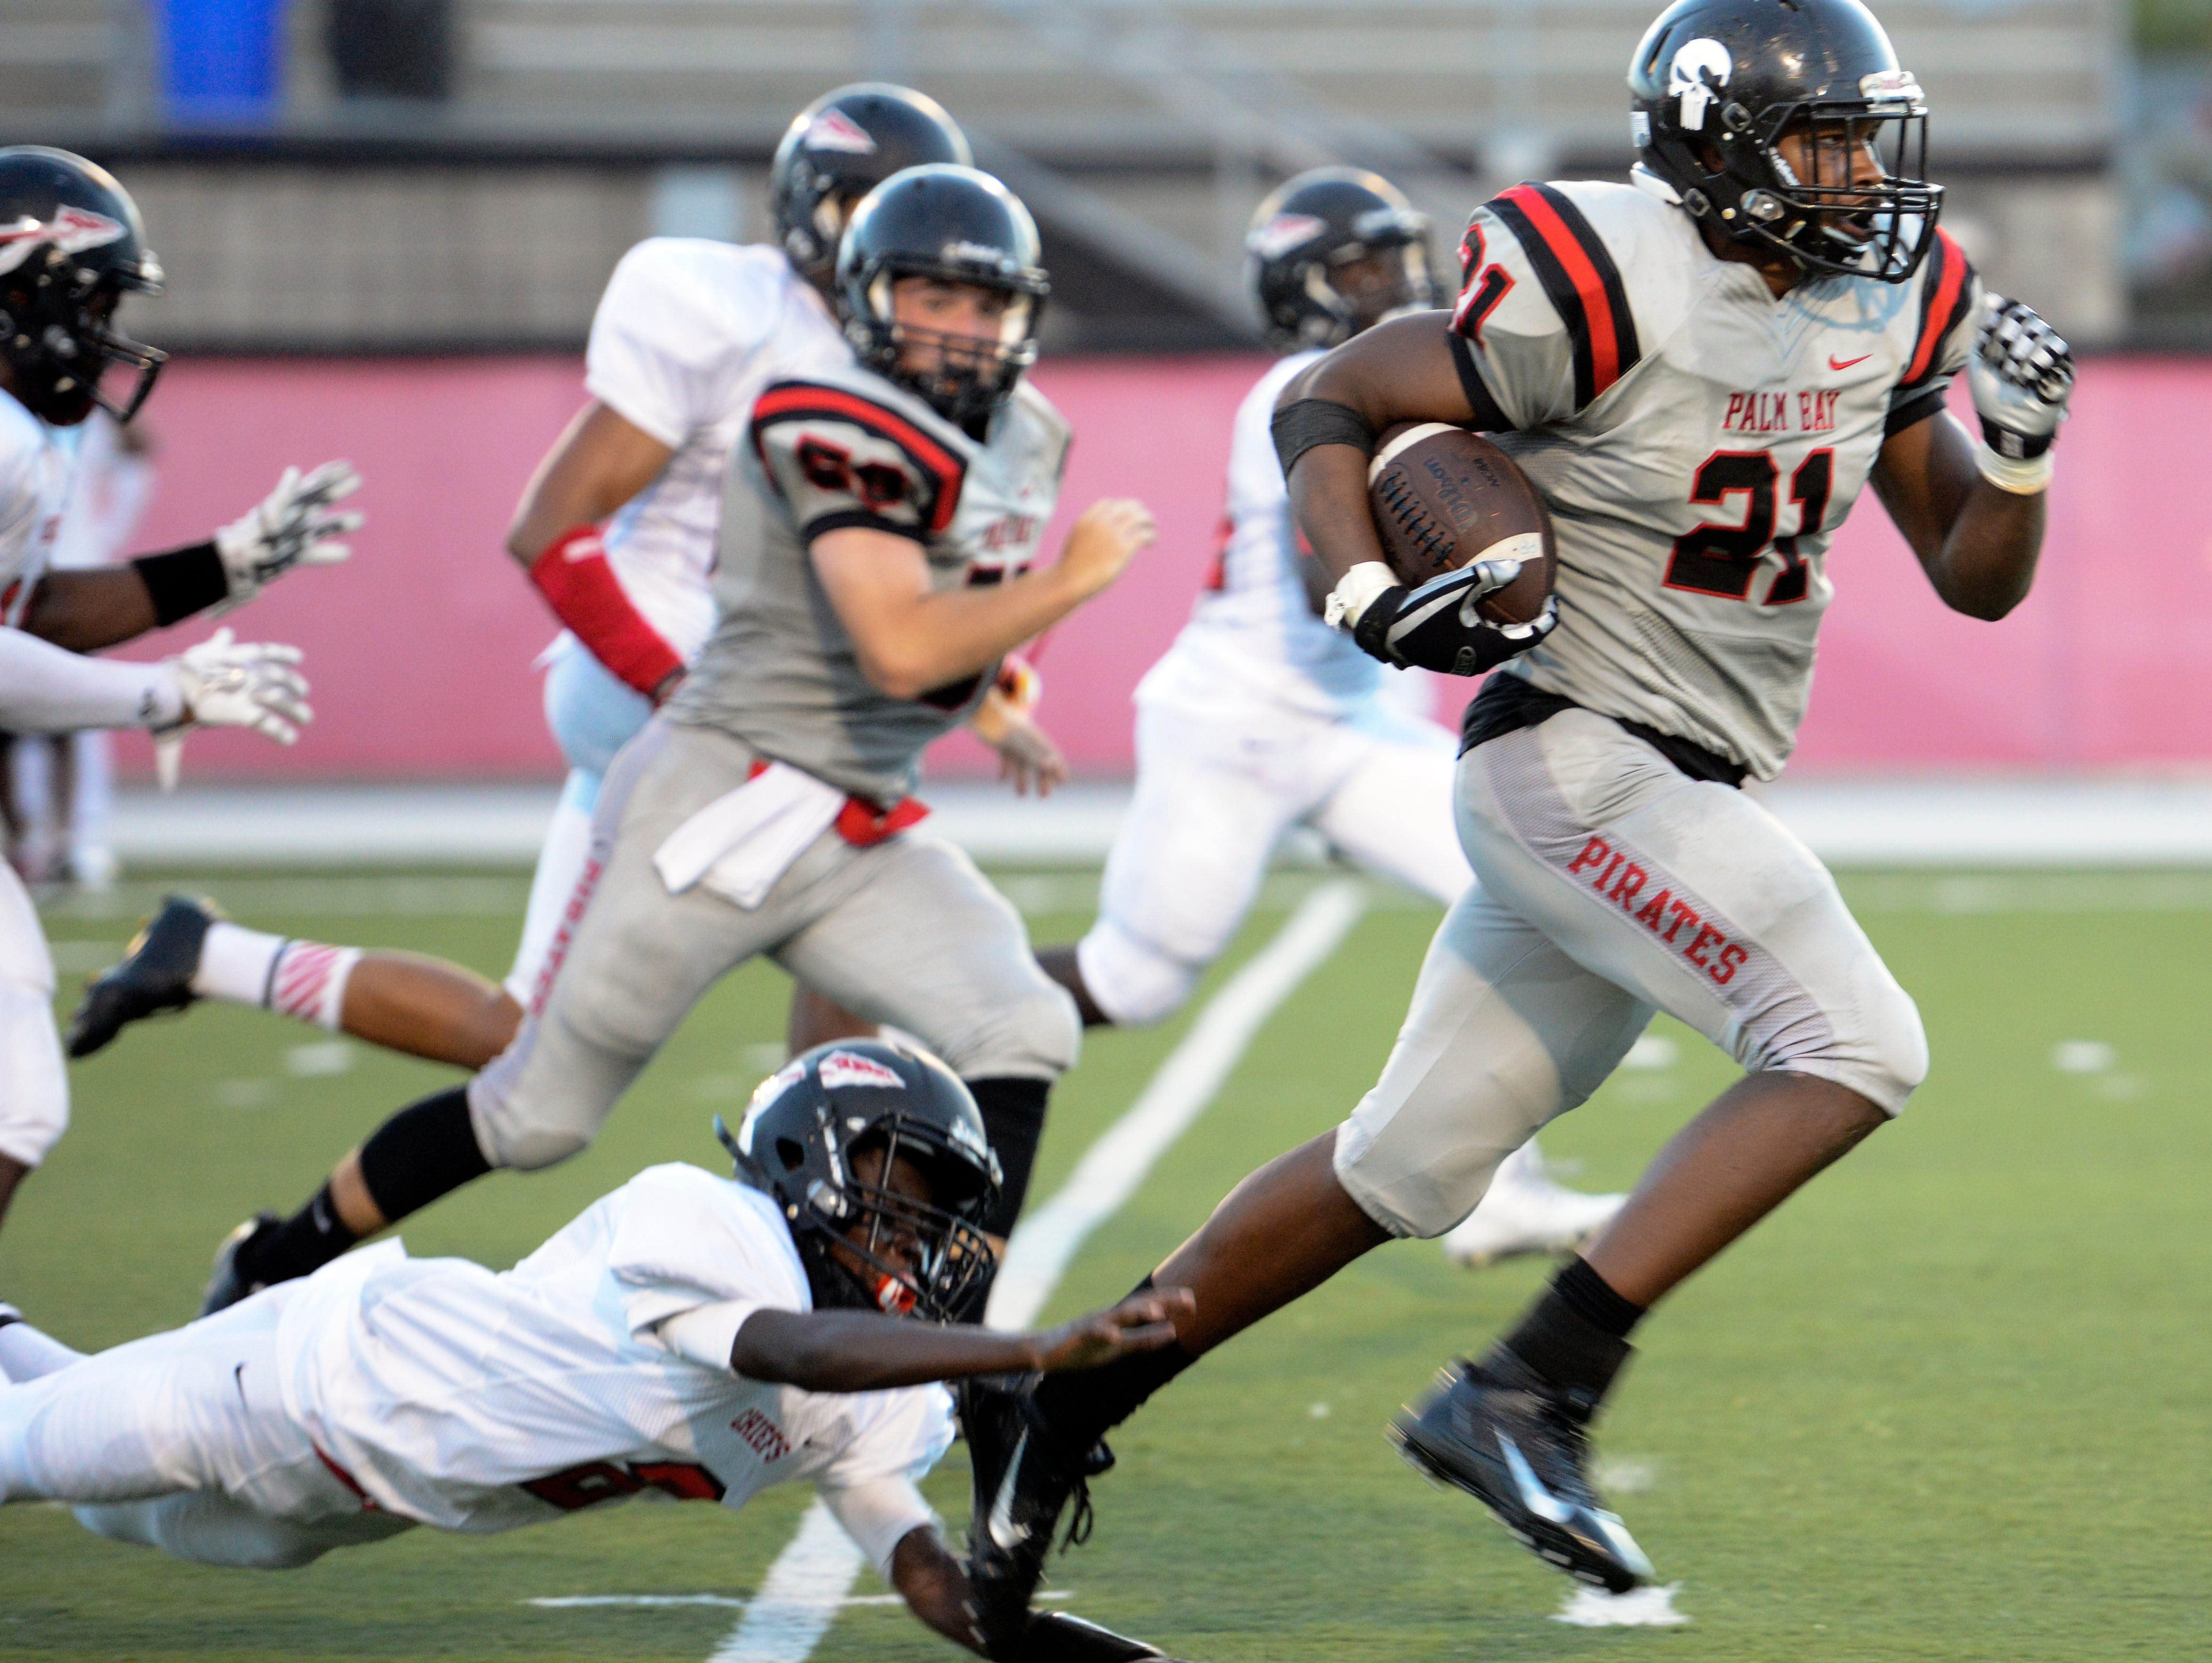 Palm Bay moved up to No. 7 in this week's Associated Press high school football rankings.